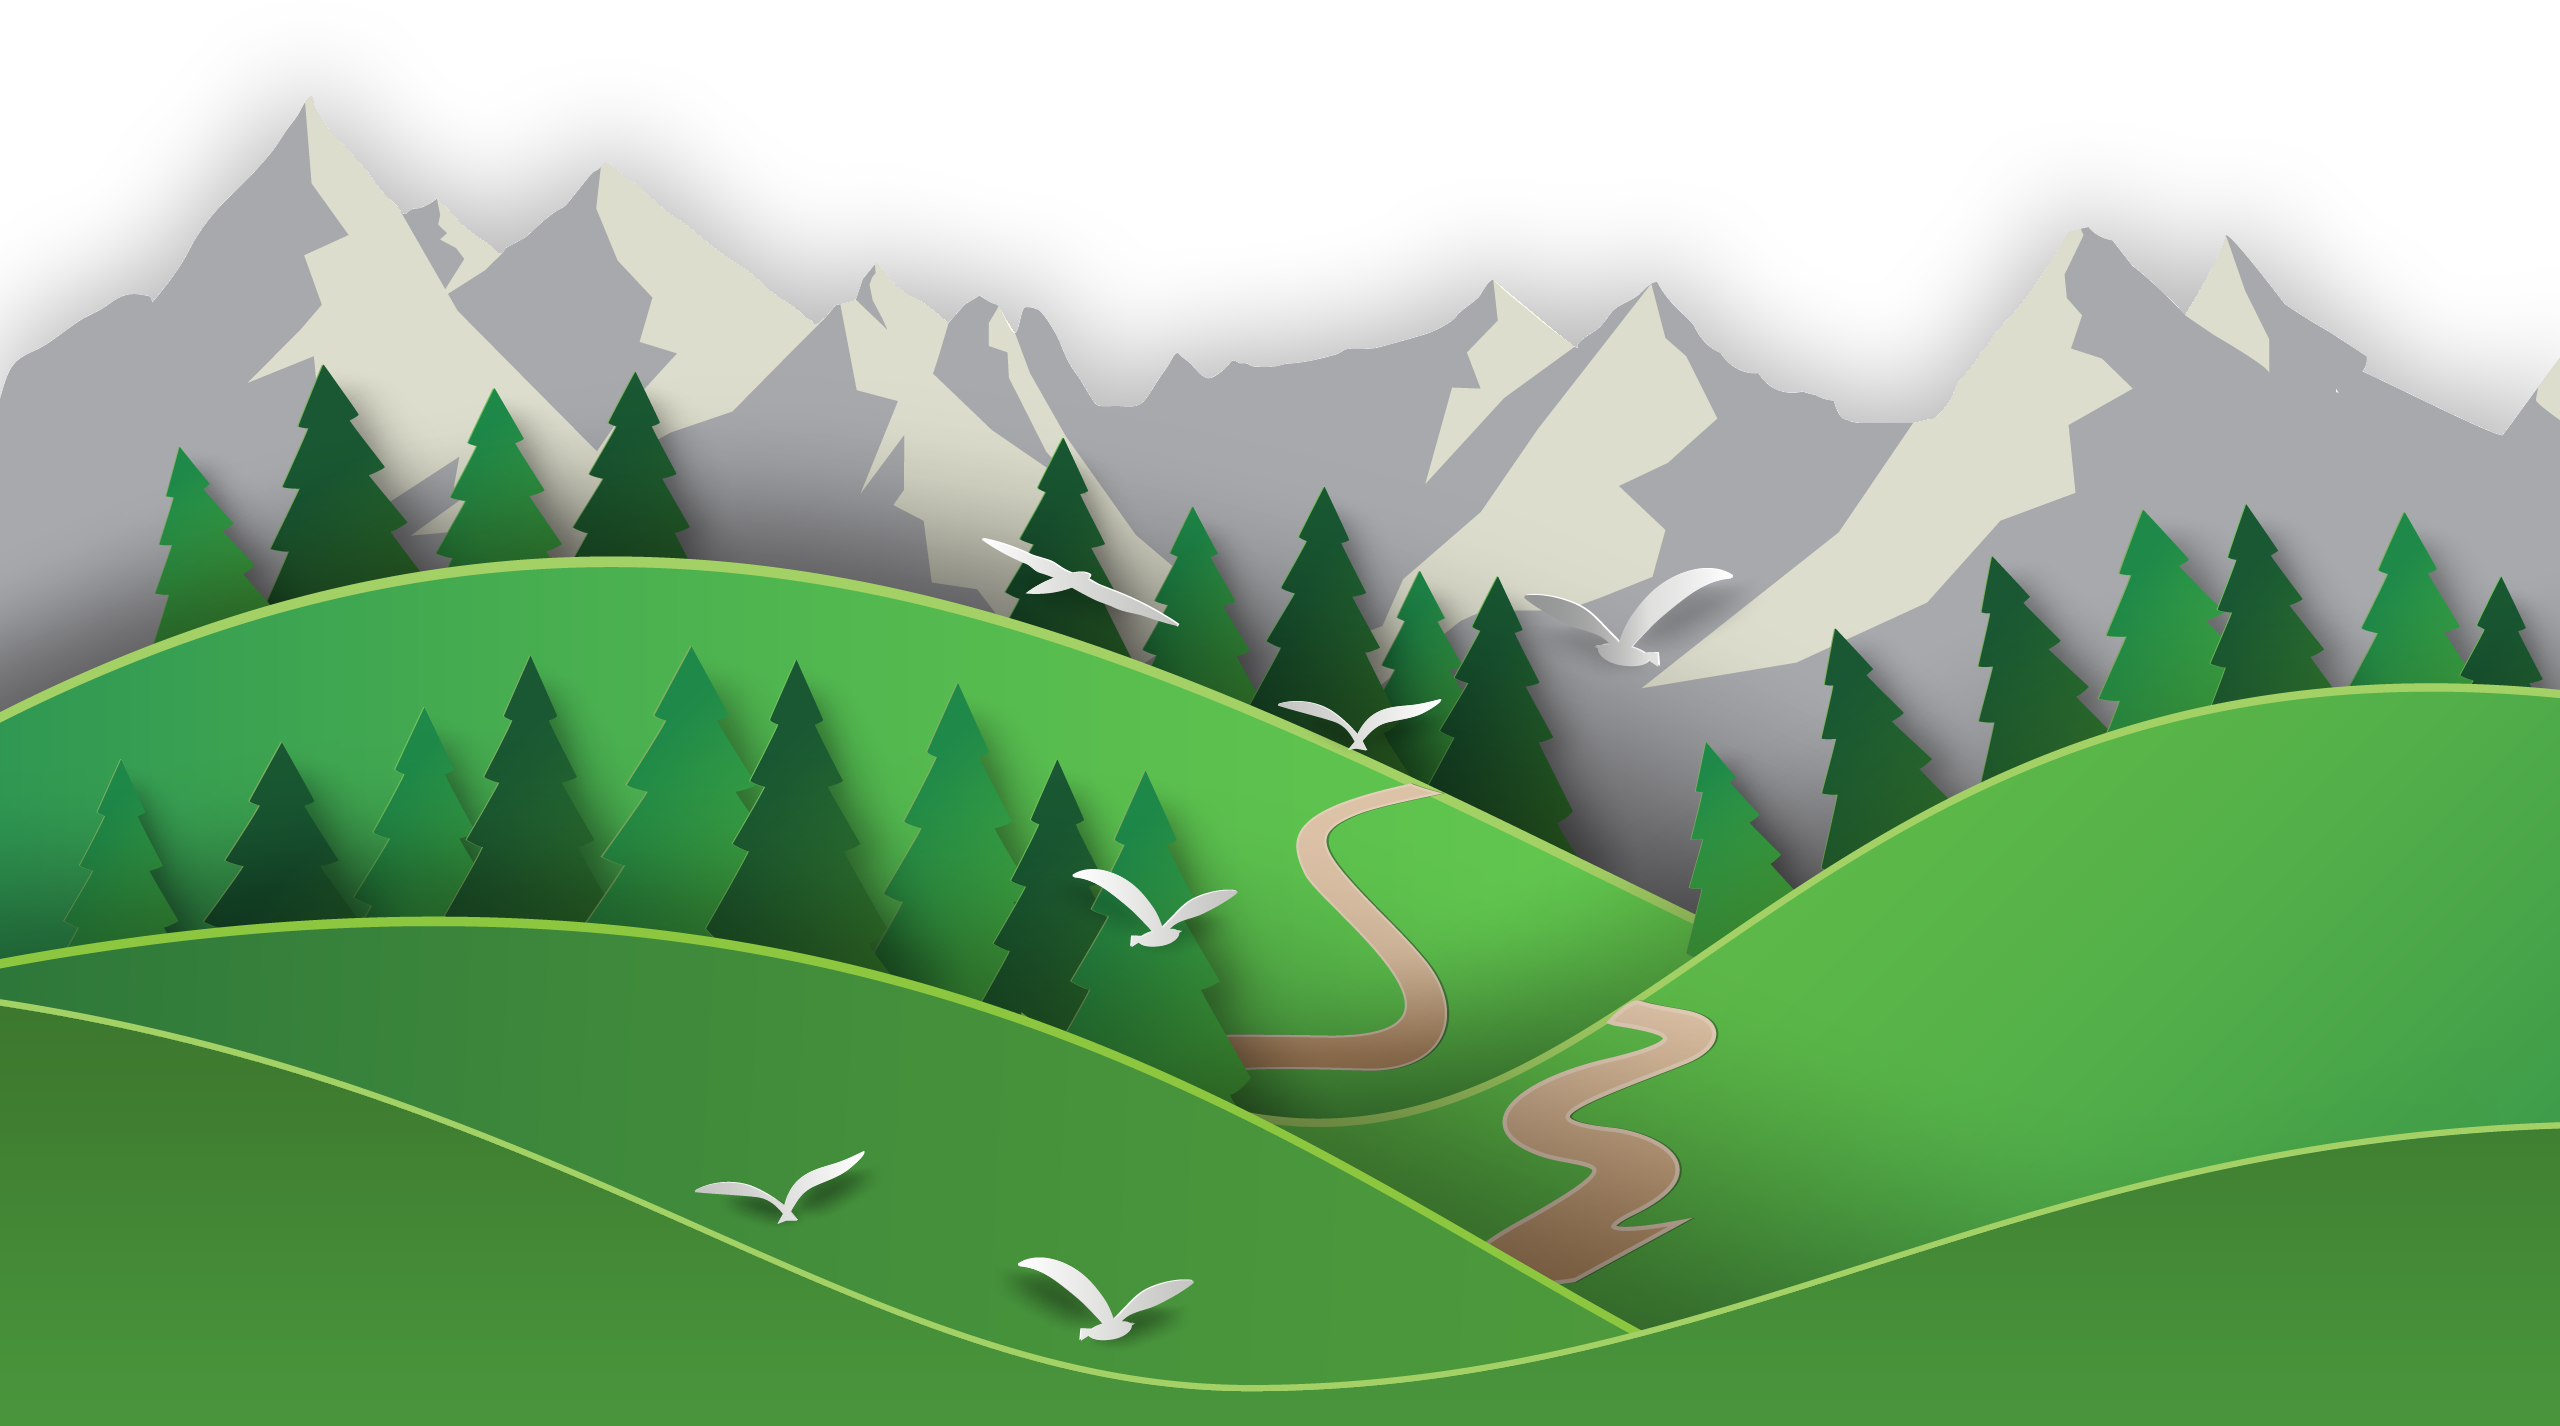 Mountains and hills clipart clipart free library Hills clipart story mountain, Hills story mountain ... clipart free library